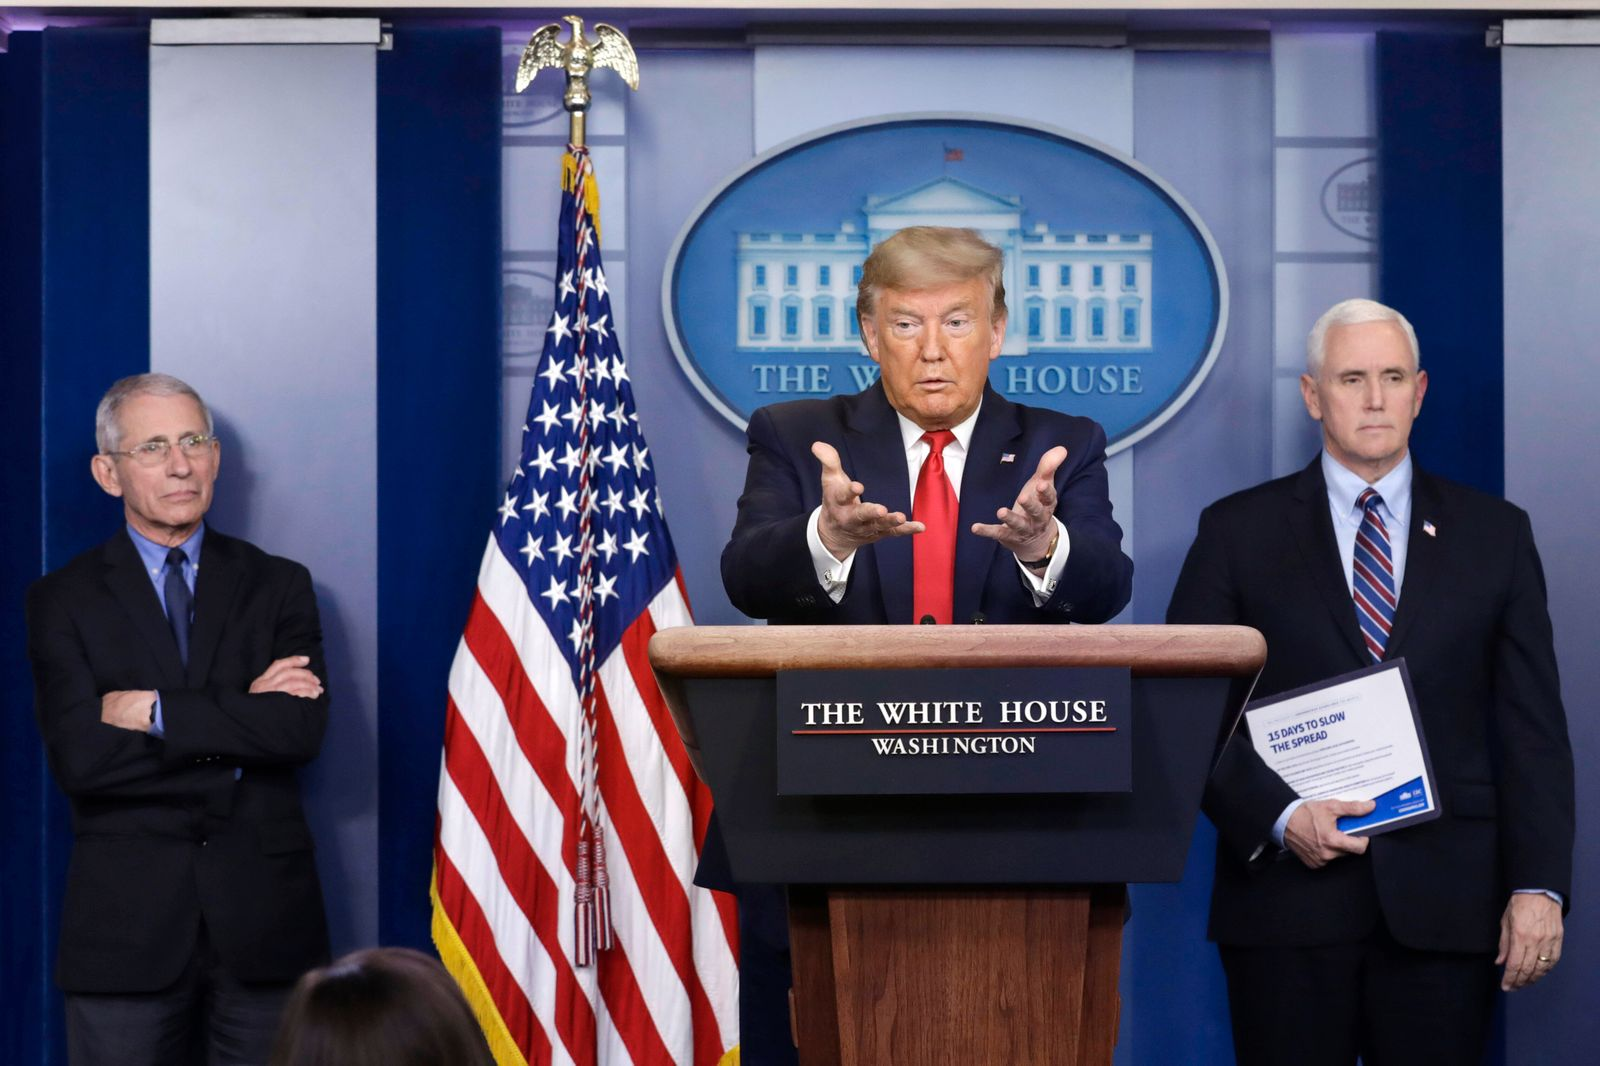 United States President Donald J. Trump, center, speaks as US Vice President Mike Pence, right, and Director of the Nat